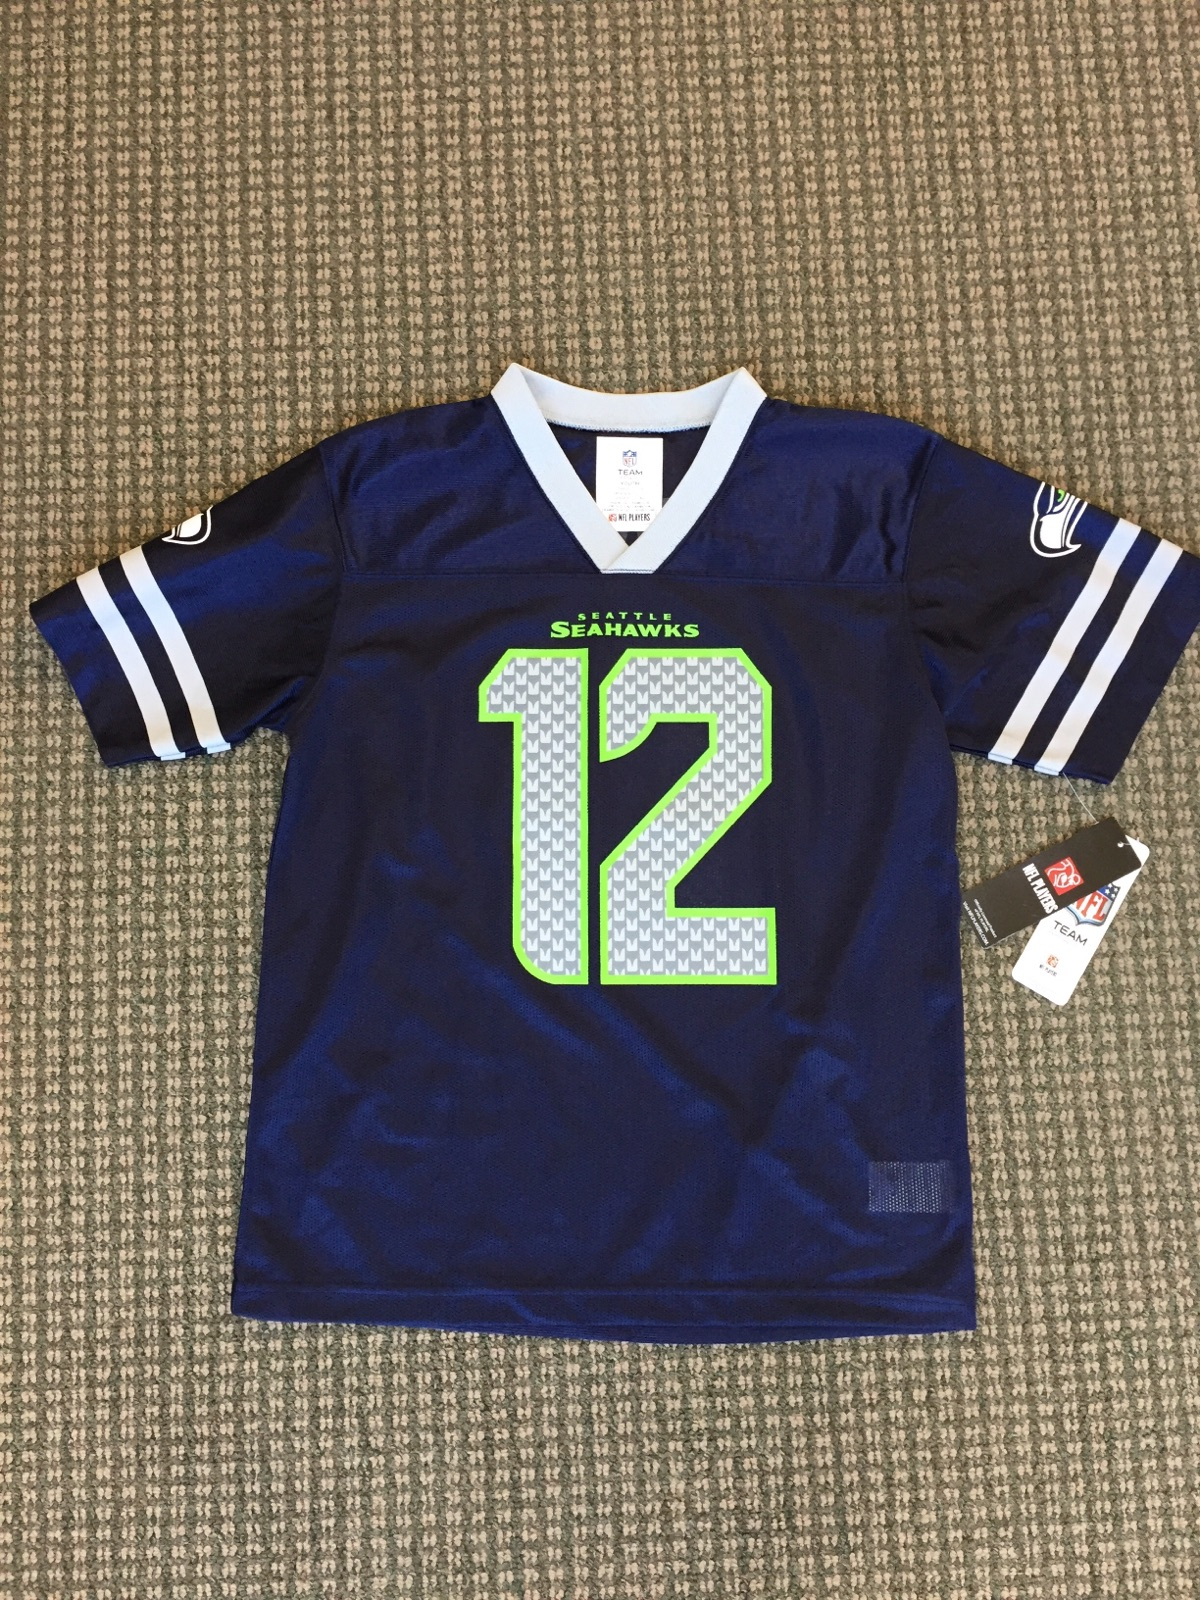 Seahawks Size 12 Month Jersey